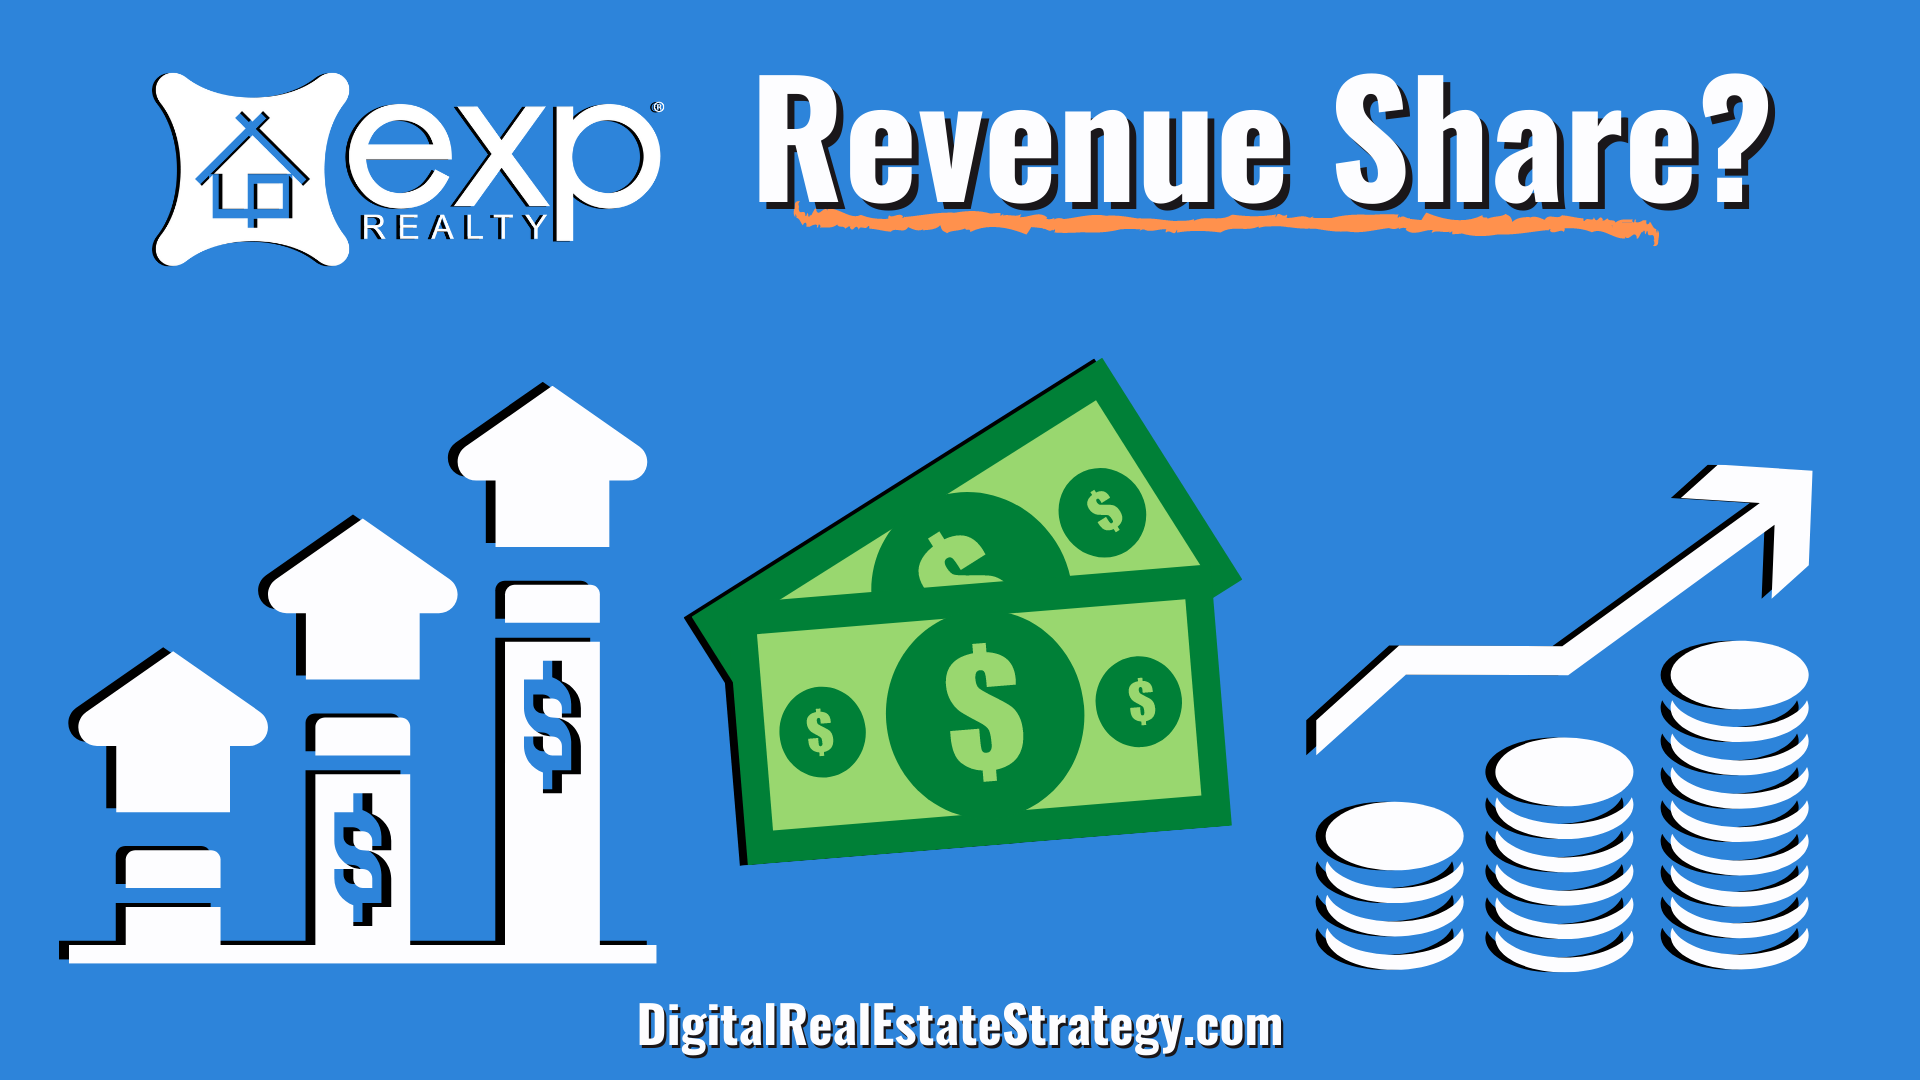 eXp Realty Review - Jerome Lewis - eXp Realty Revenue Share - Digital Real Estate Strategy